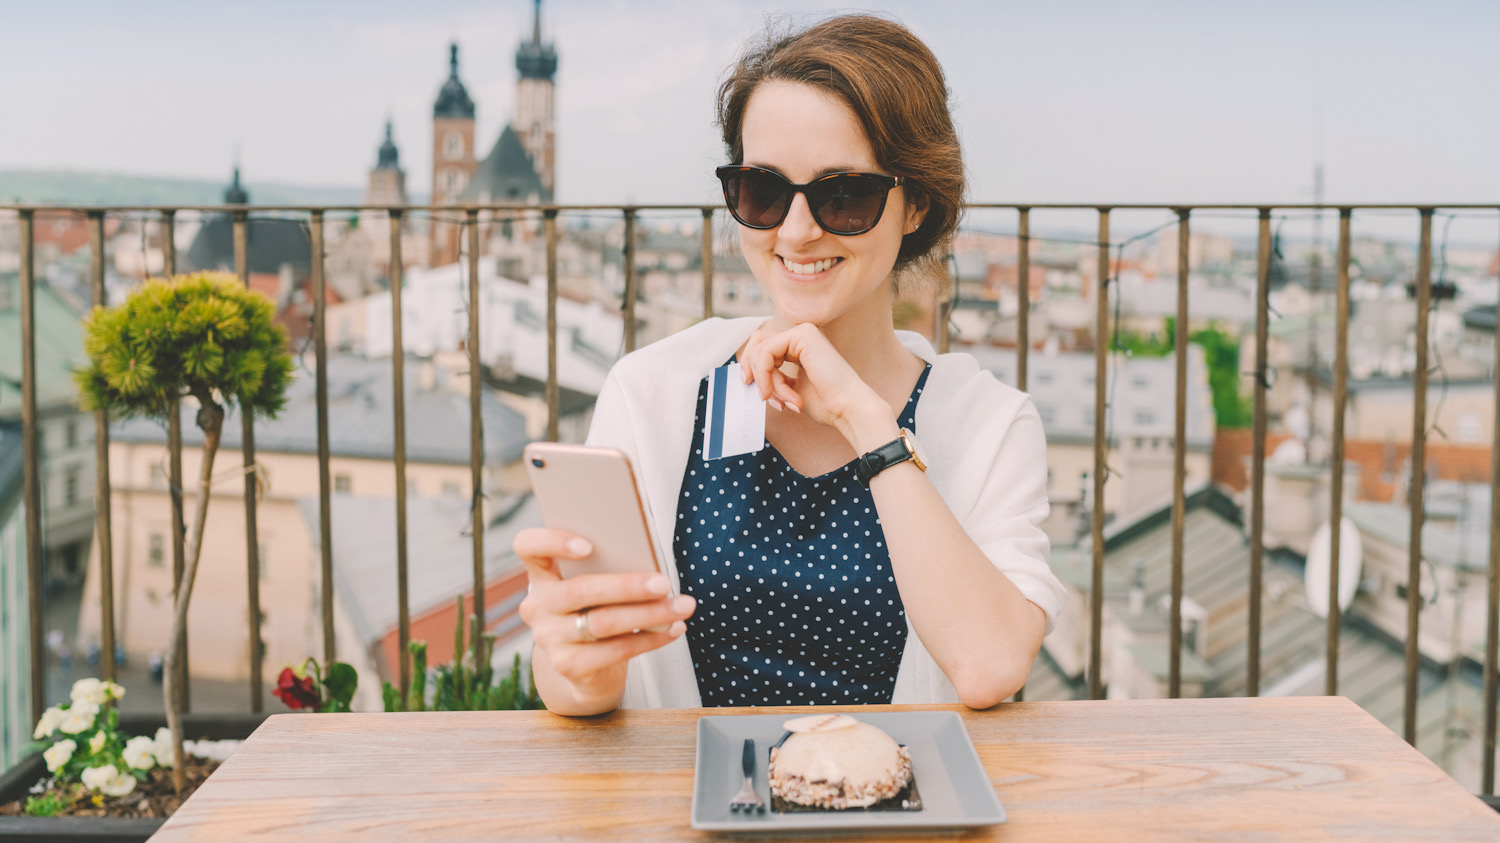 Photo shows a woman wearing sunglasses eating on a rooftop and using her phone. Google has just made it possible to search for hotels by sustainability rating.